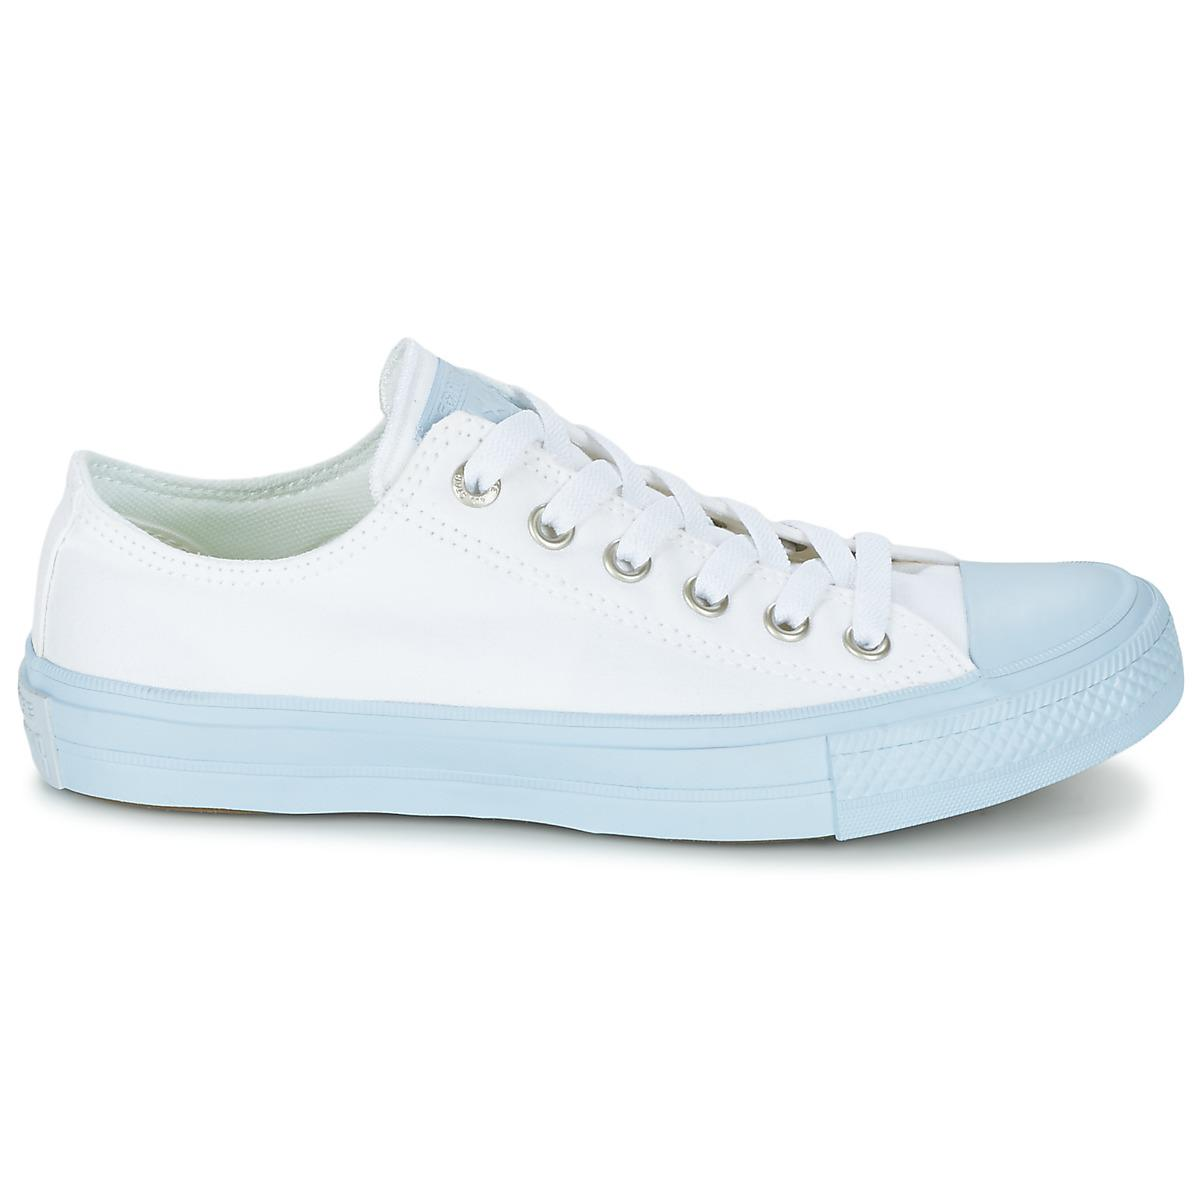 Converse Chuck Taylor All Star Ii Pastel Midsoles Ox Women's Shoes (trainers) In Blue